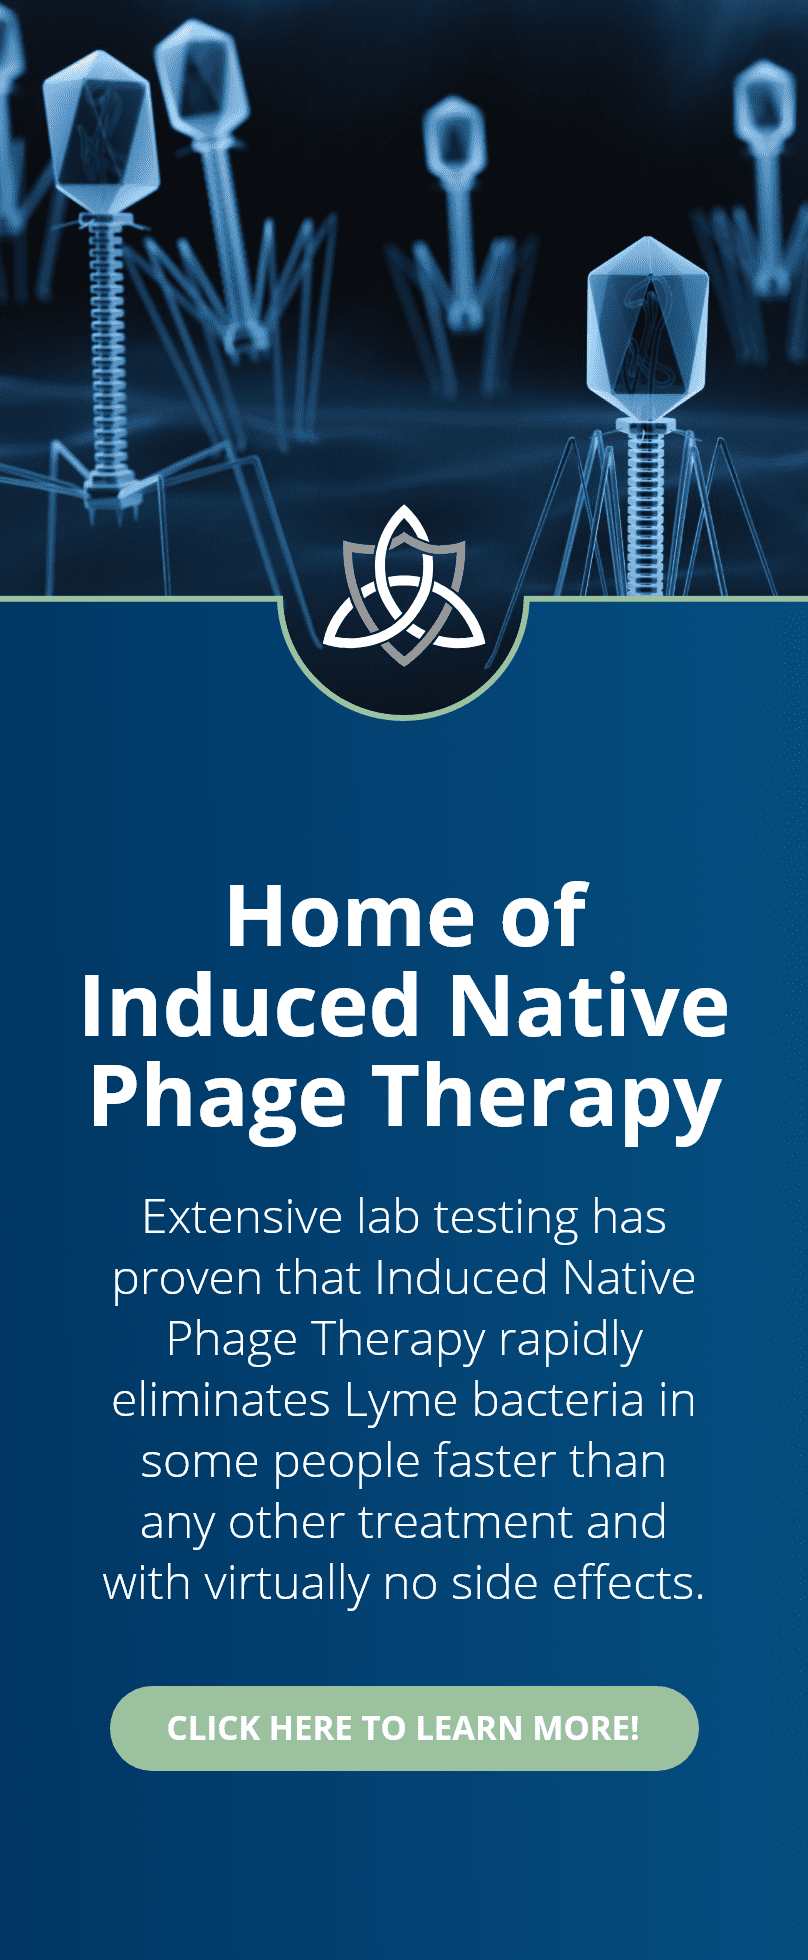 Phage Therapy (INPT)